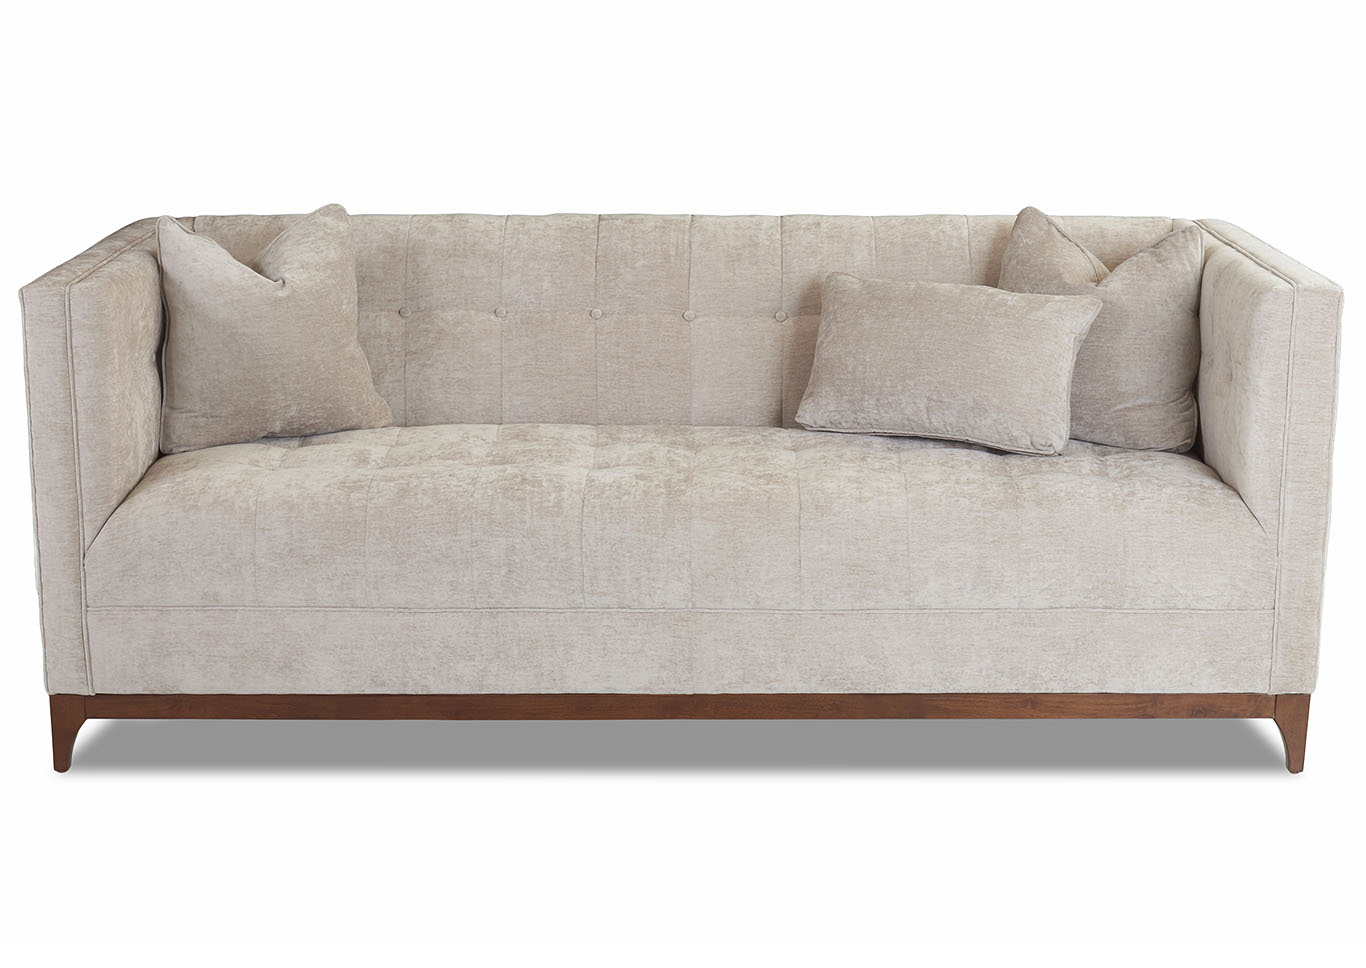 Hornell Evyn Dune Stationary Sofa Outlet Boulevard Furniture Fabric